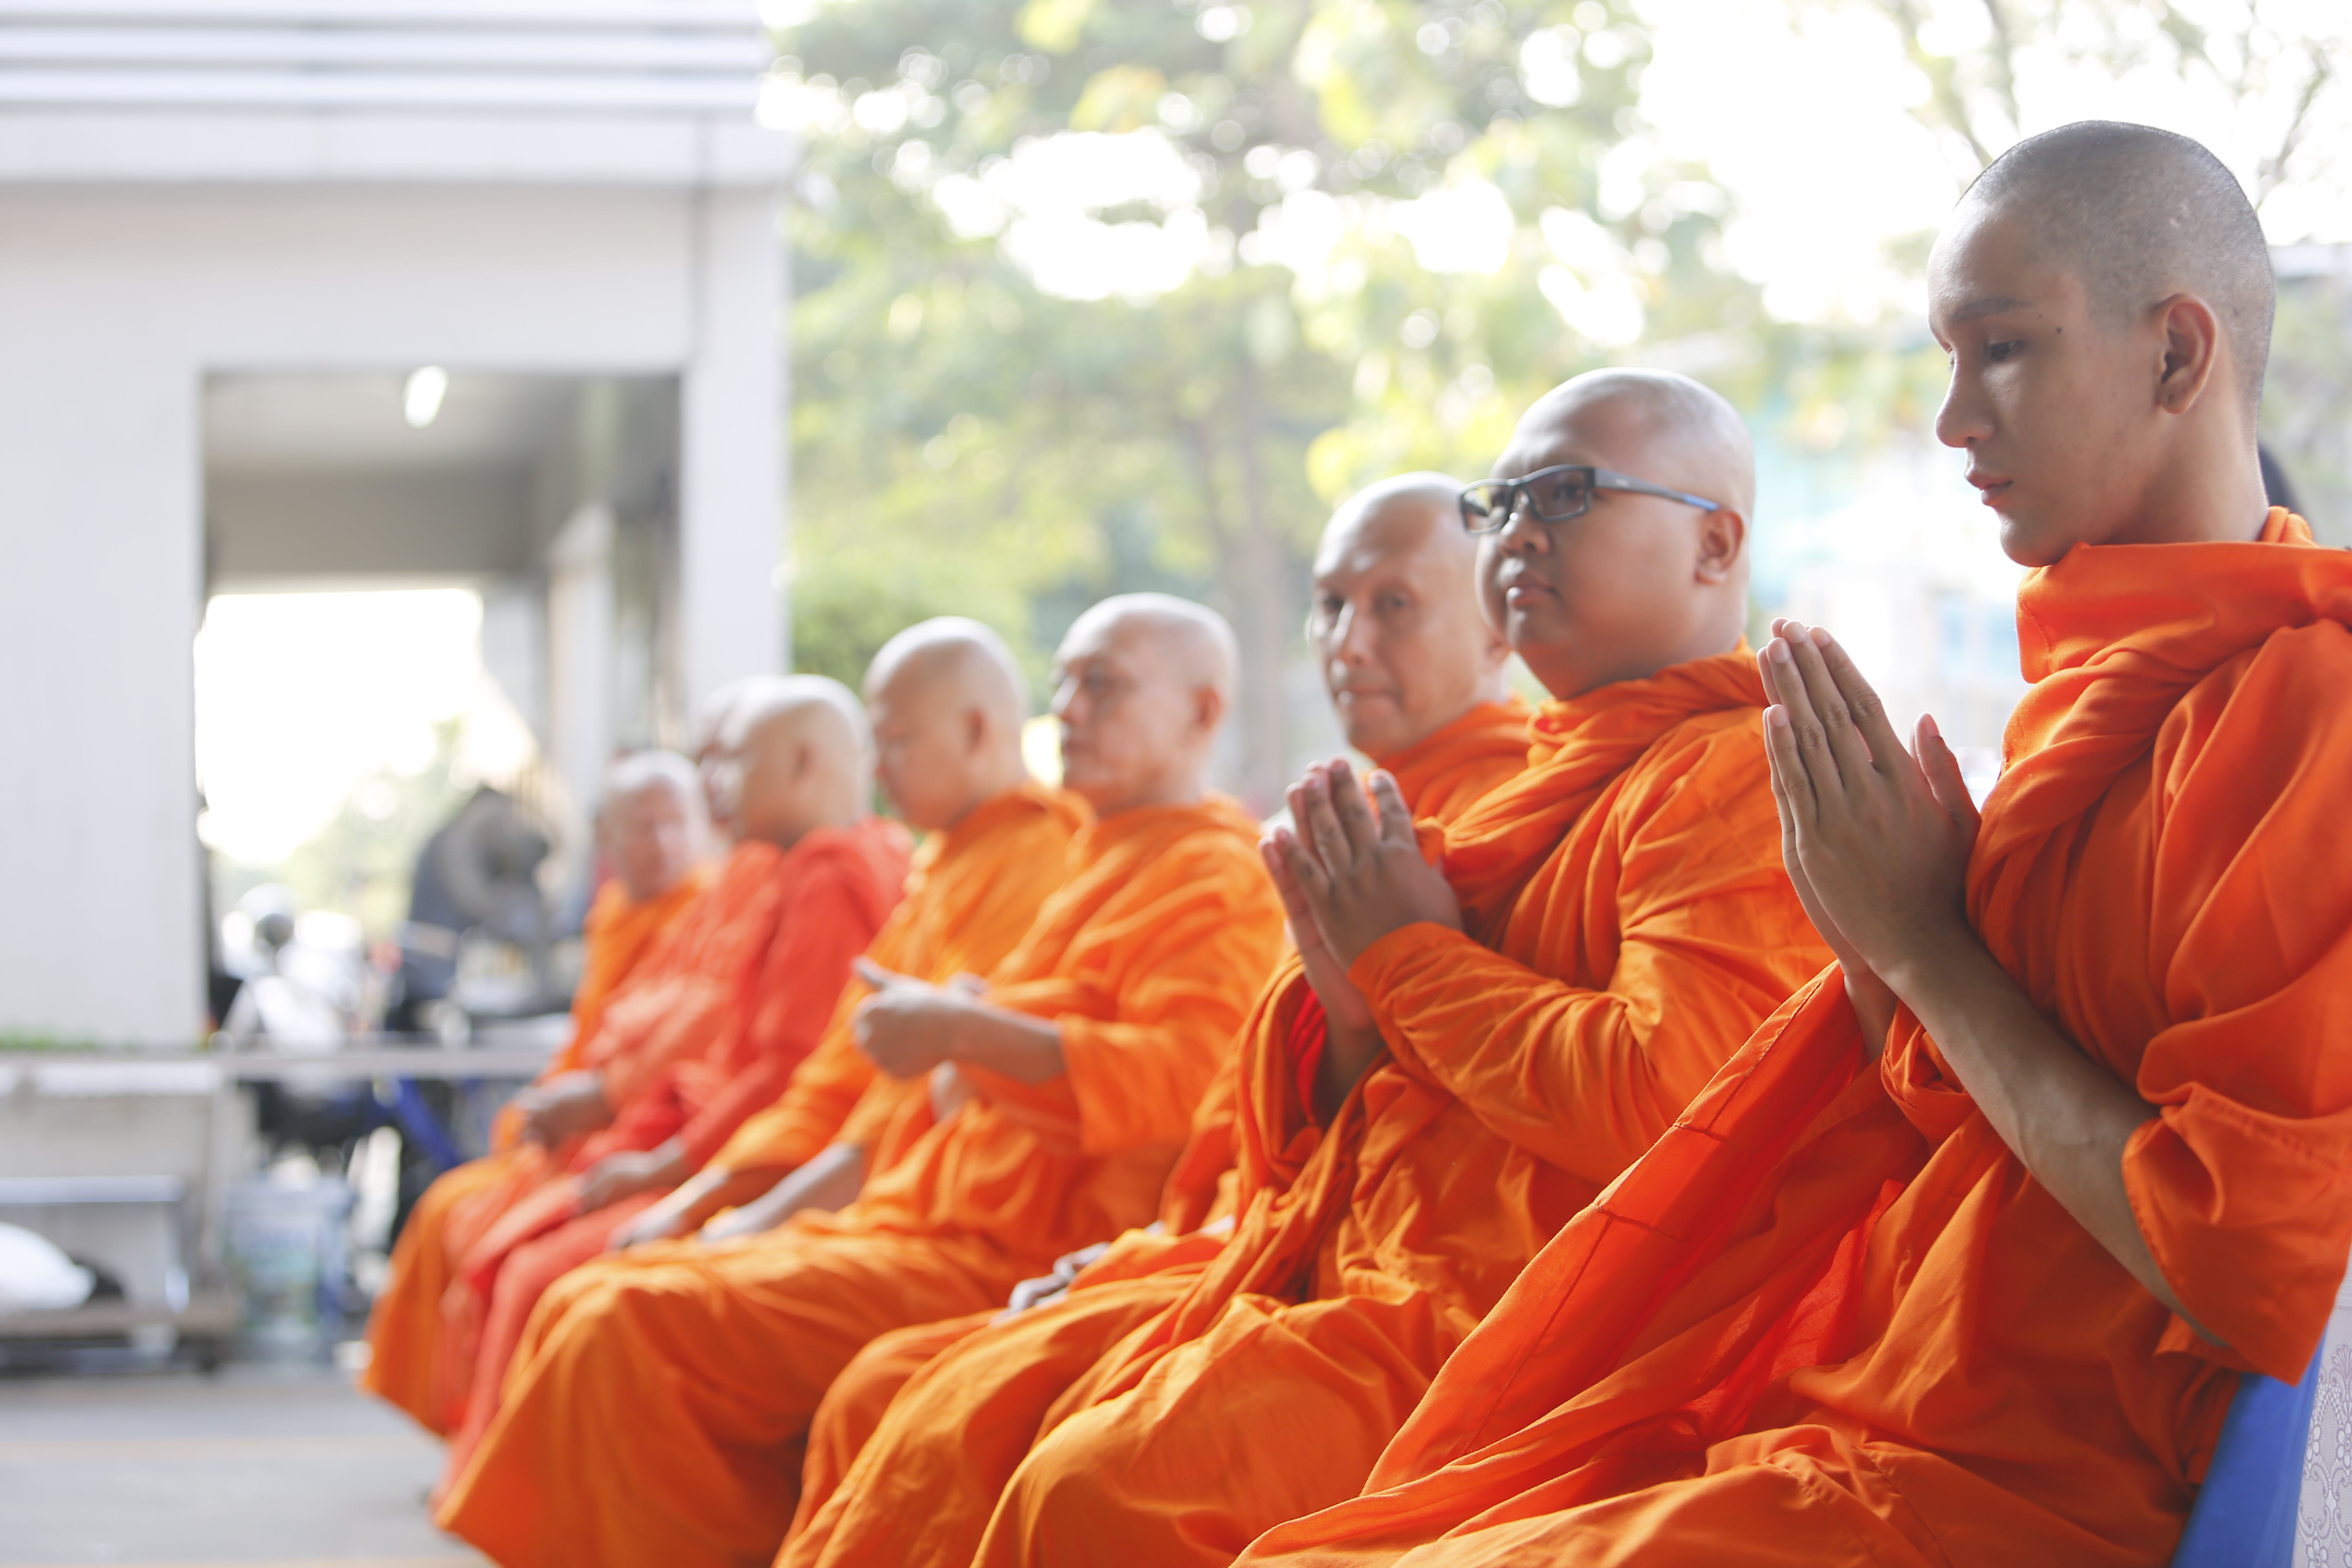 Group of Monks Sitting Near White Concrete Building